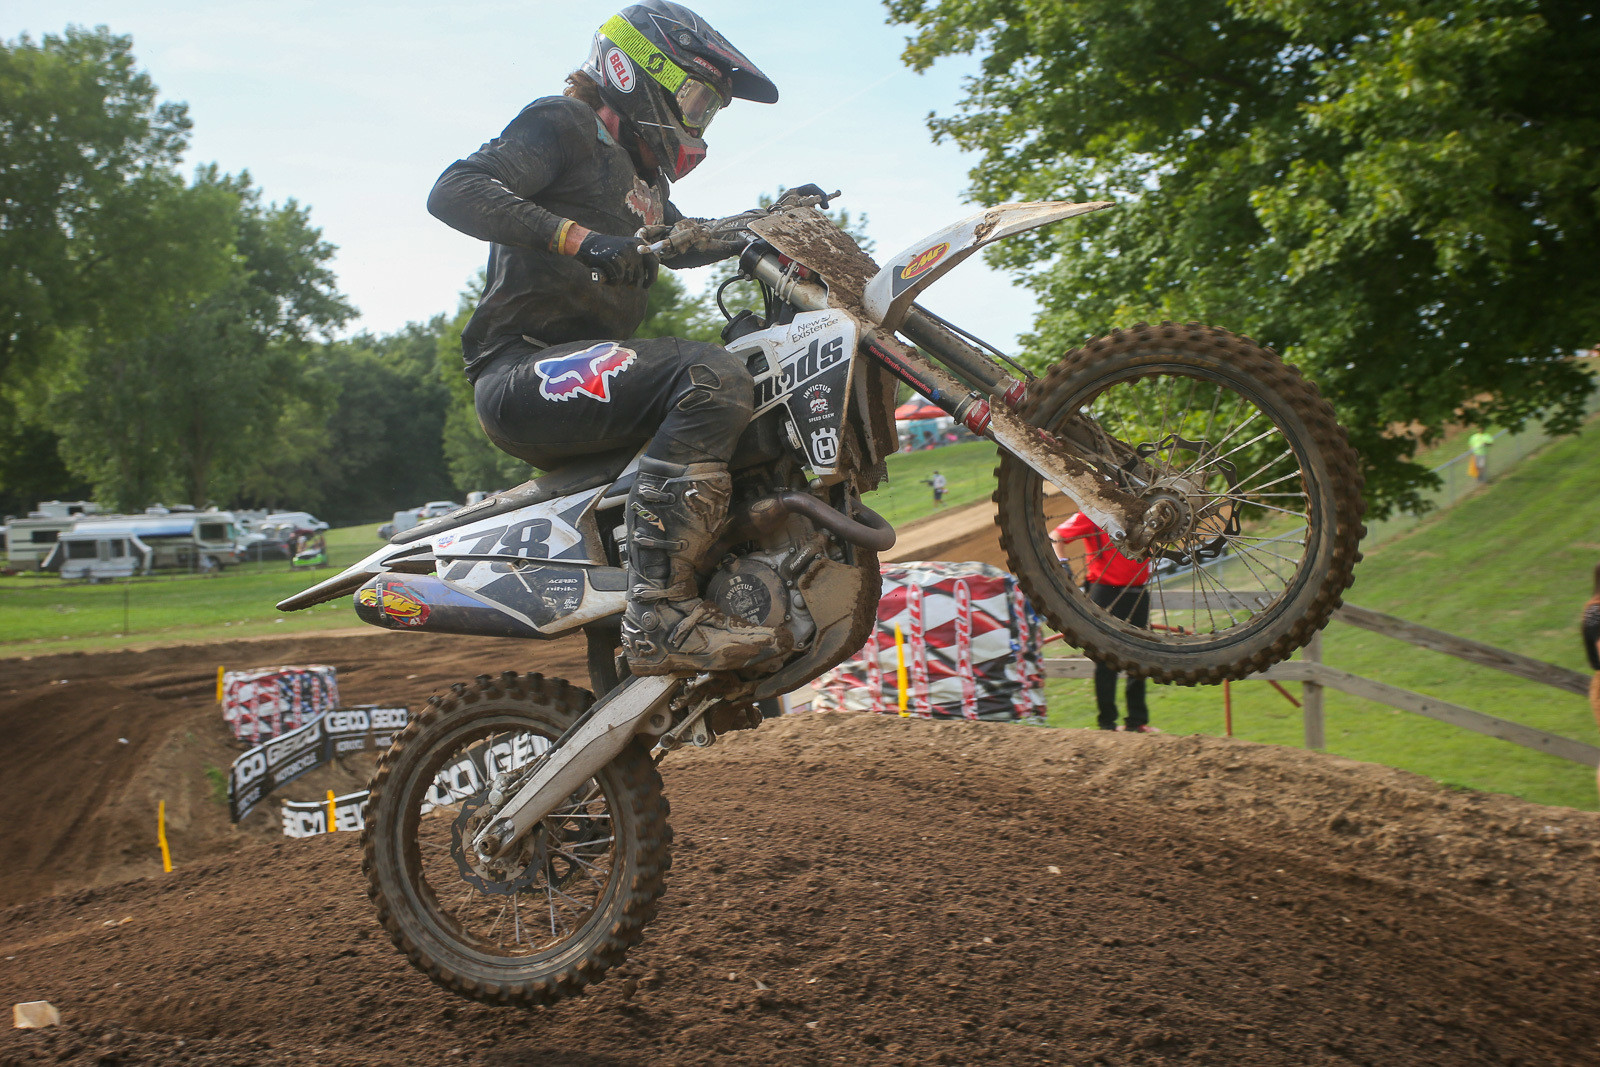 Eli just edged out Jake Masterpool's +22 day. His 14th overall was a lot better than his RedBud 1 tally, where he had a pair of DNFs.